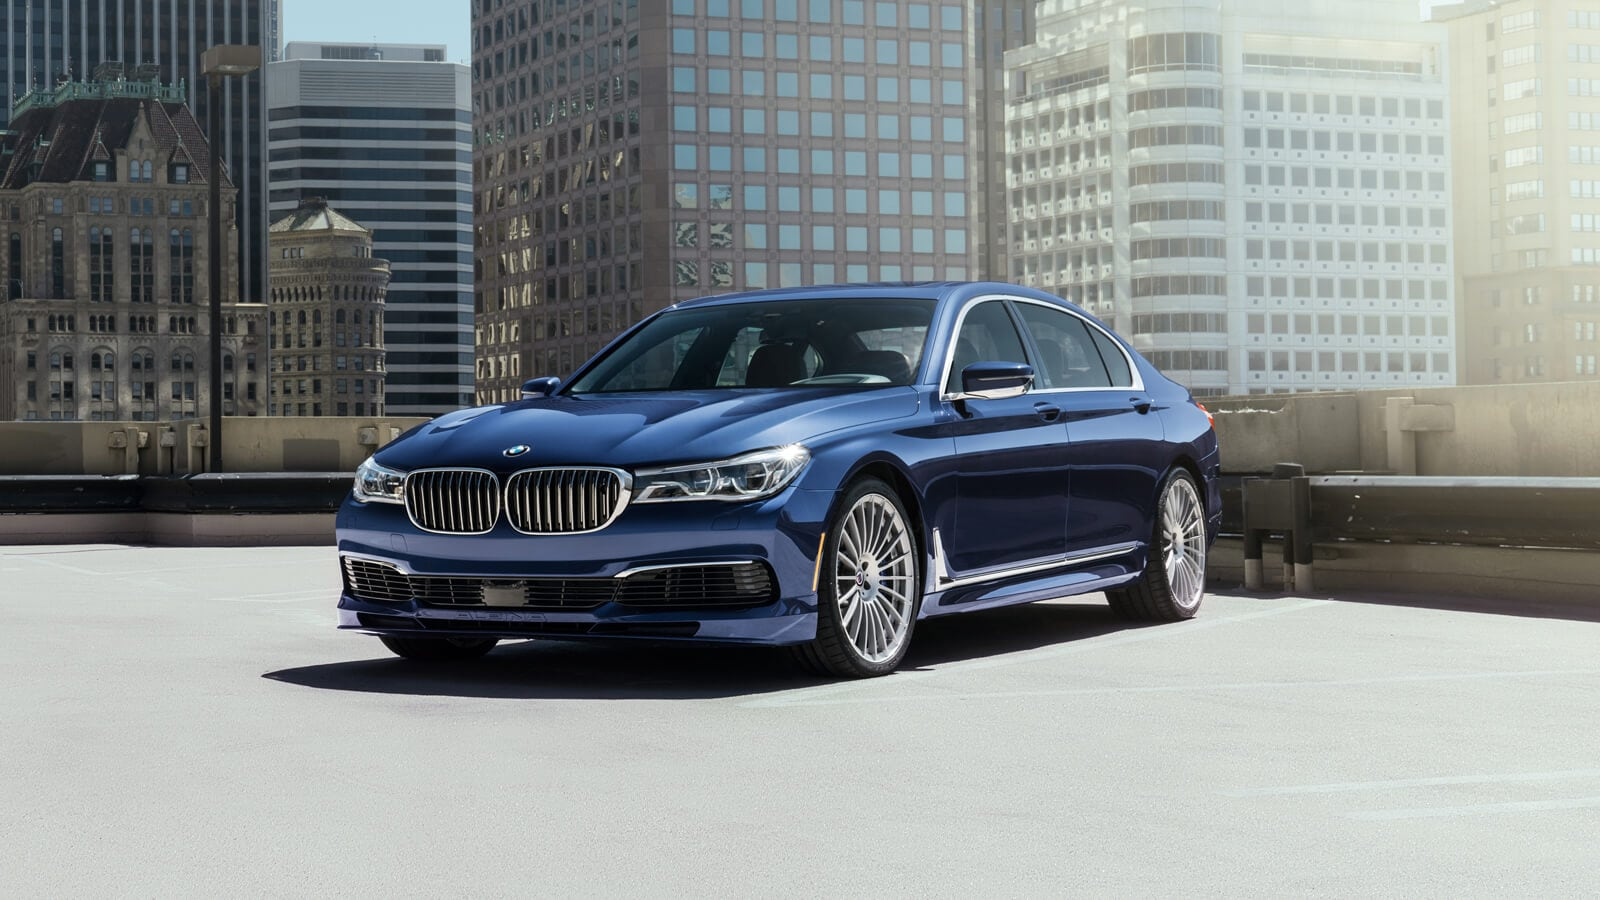 BMW Performance Driving School >> BMW 7 Series Sedan – Gallery – BMW USA